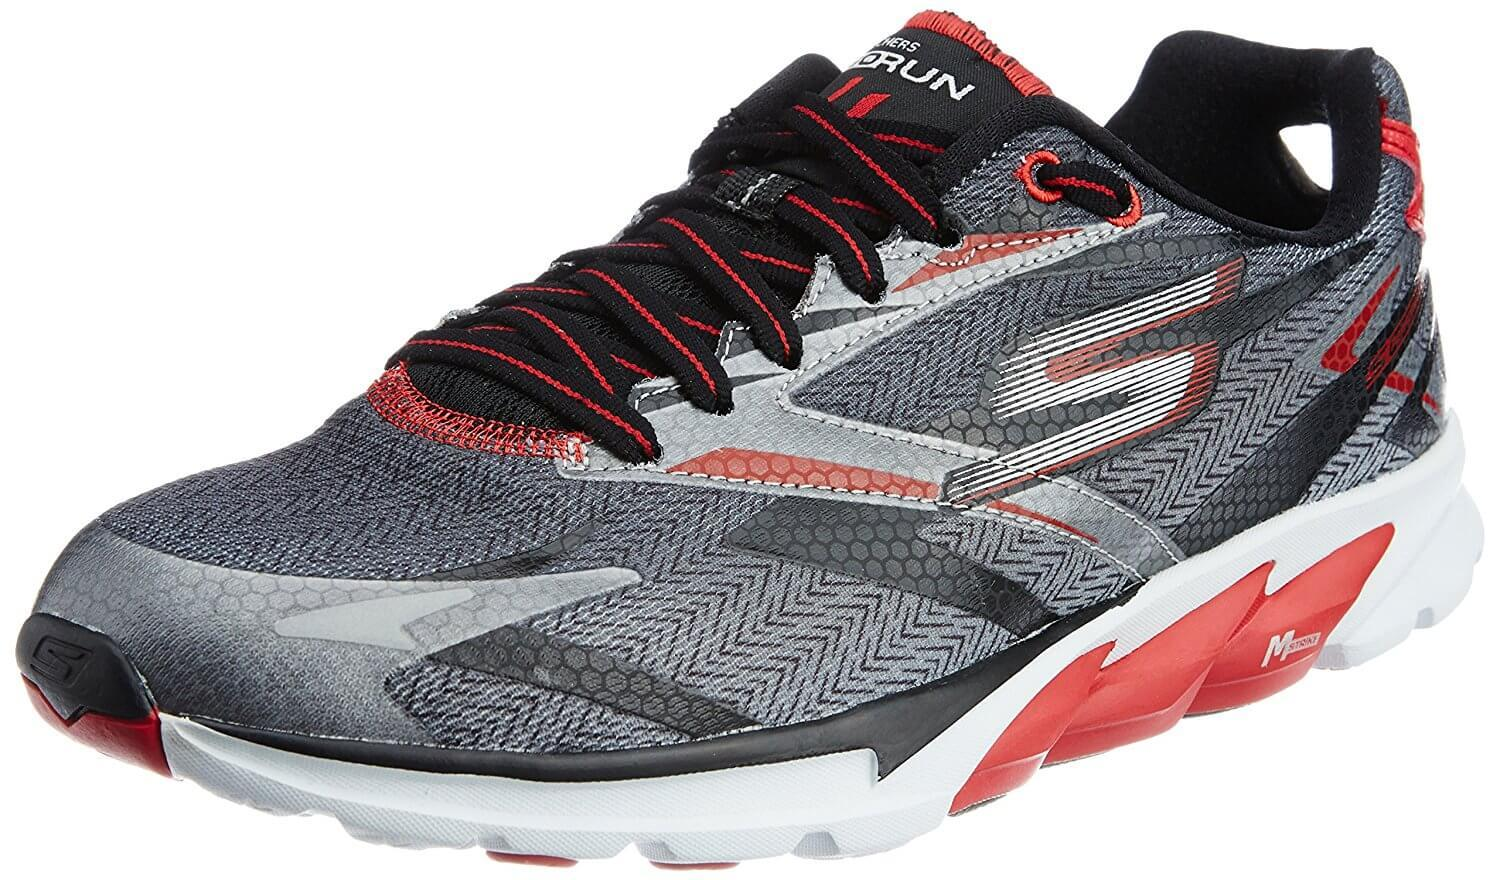 A three quarter perspective of the Skechers GoRun Ride 4 running shoe